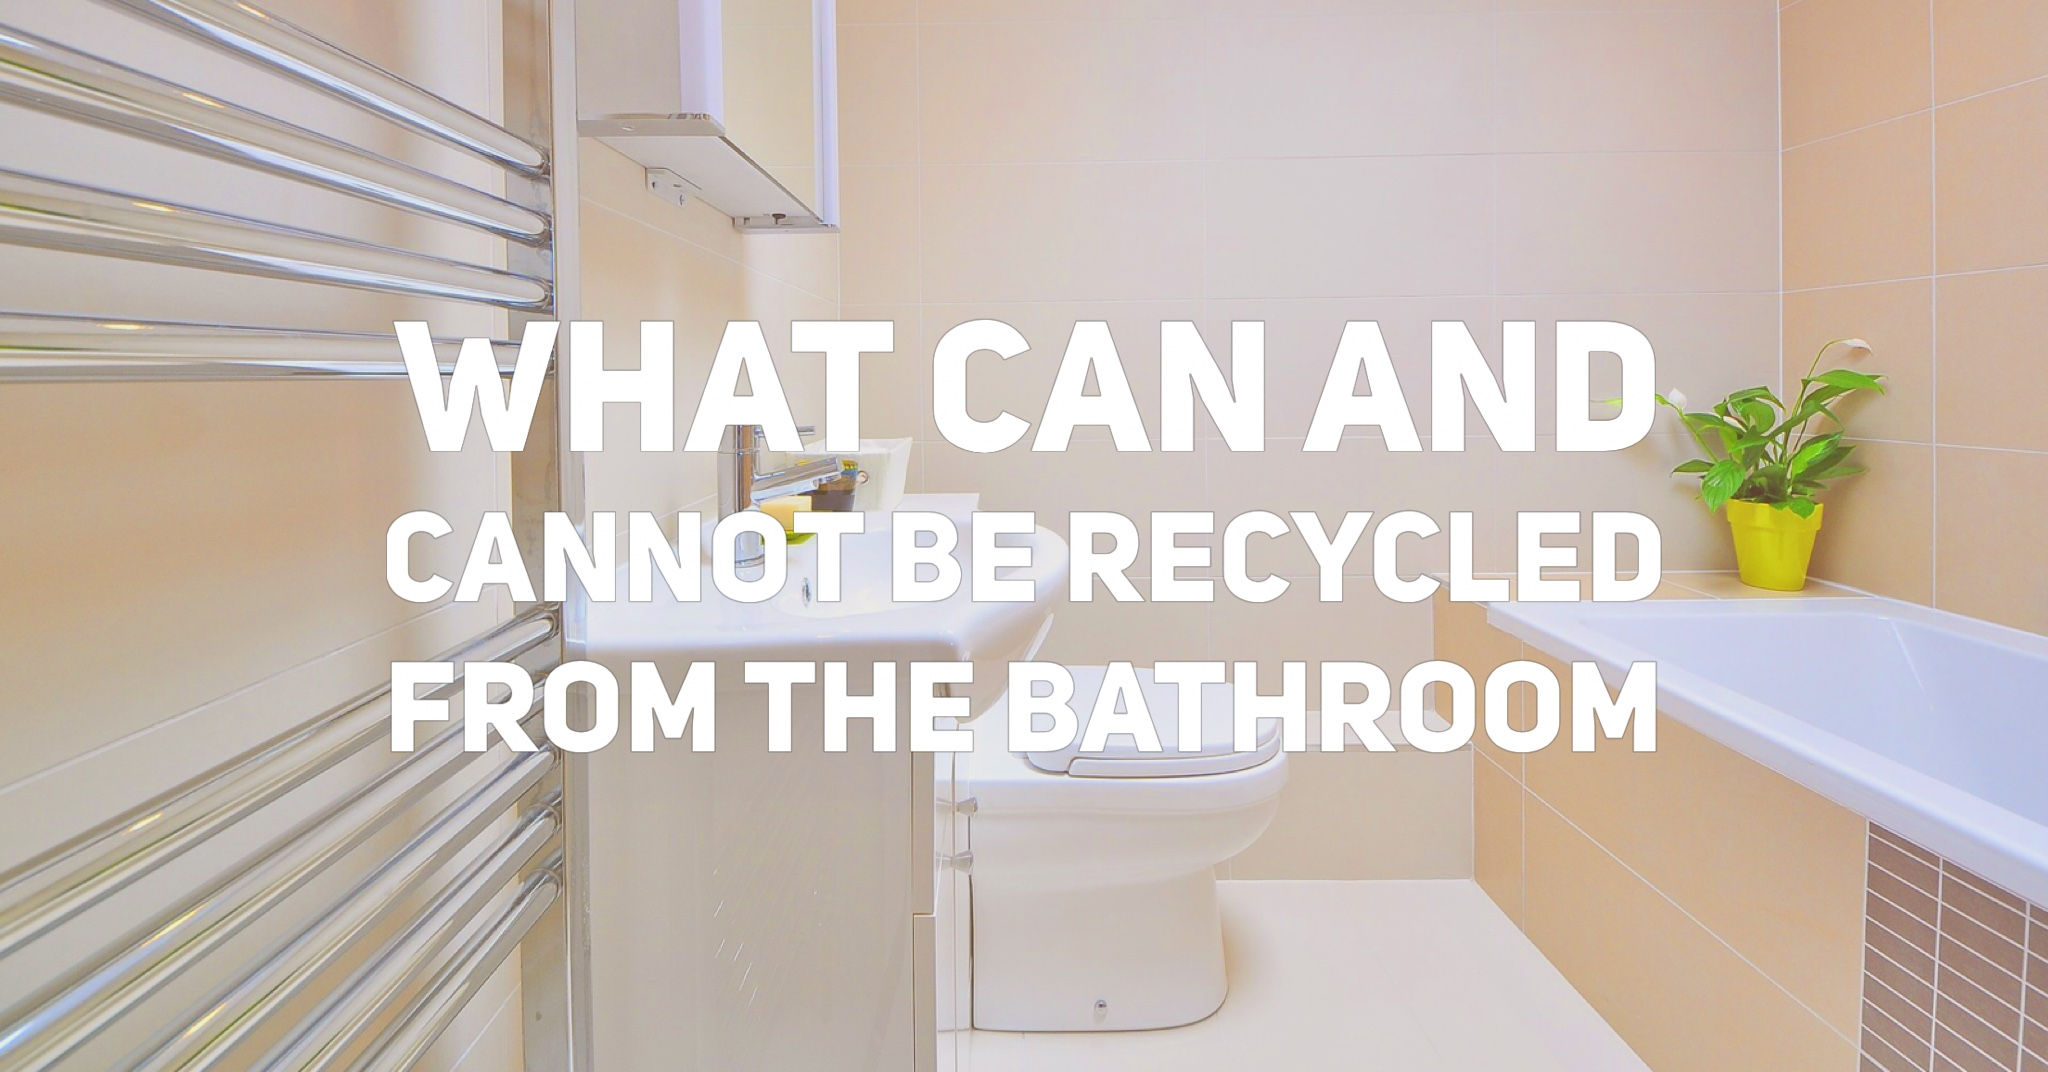 What can and cannot be recycled from the bathroom